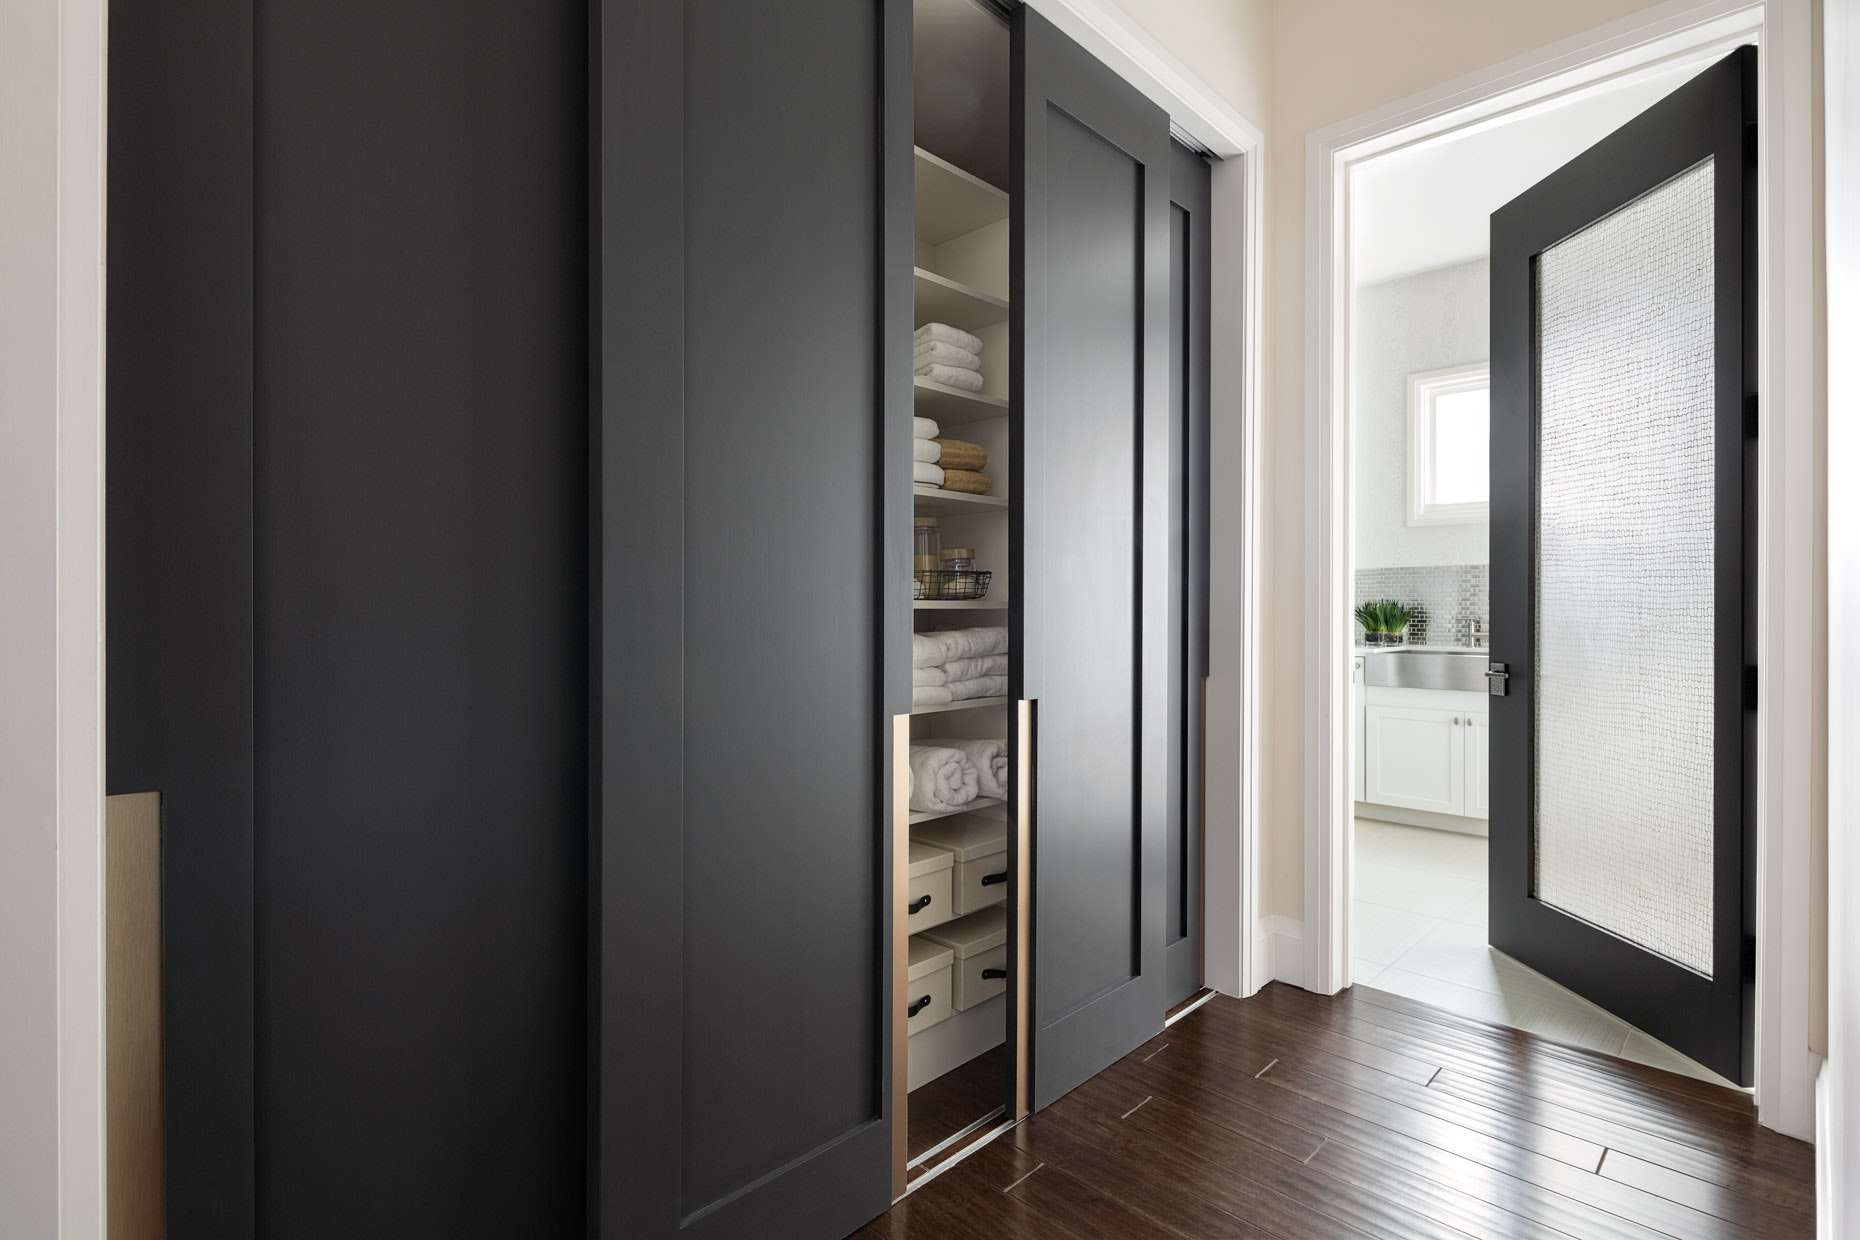 exterior-design-awesome-trustile-doors-for-home-decoration-ideas-image-with-fascinating-sliding-hall-cupboard-doors-hallway-nz-door-wardrobe